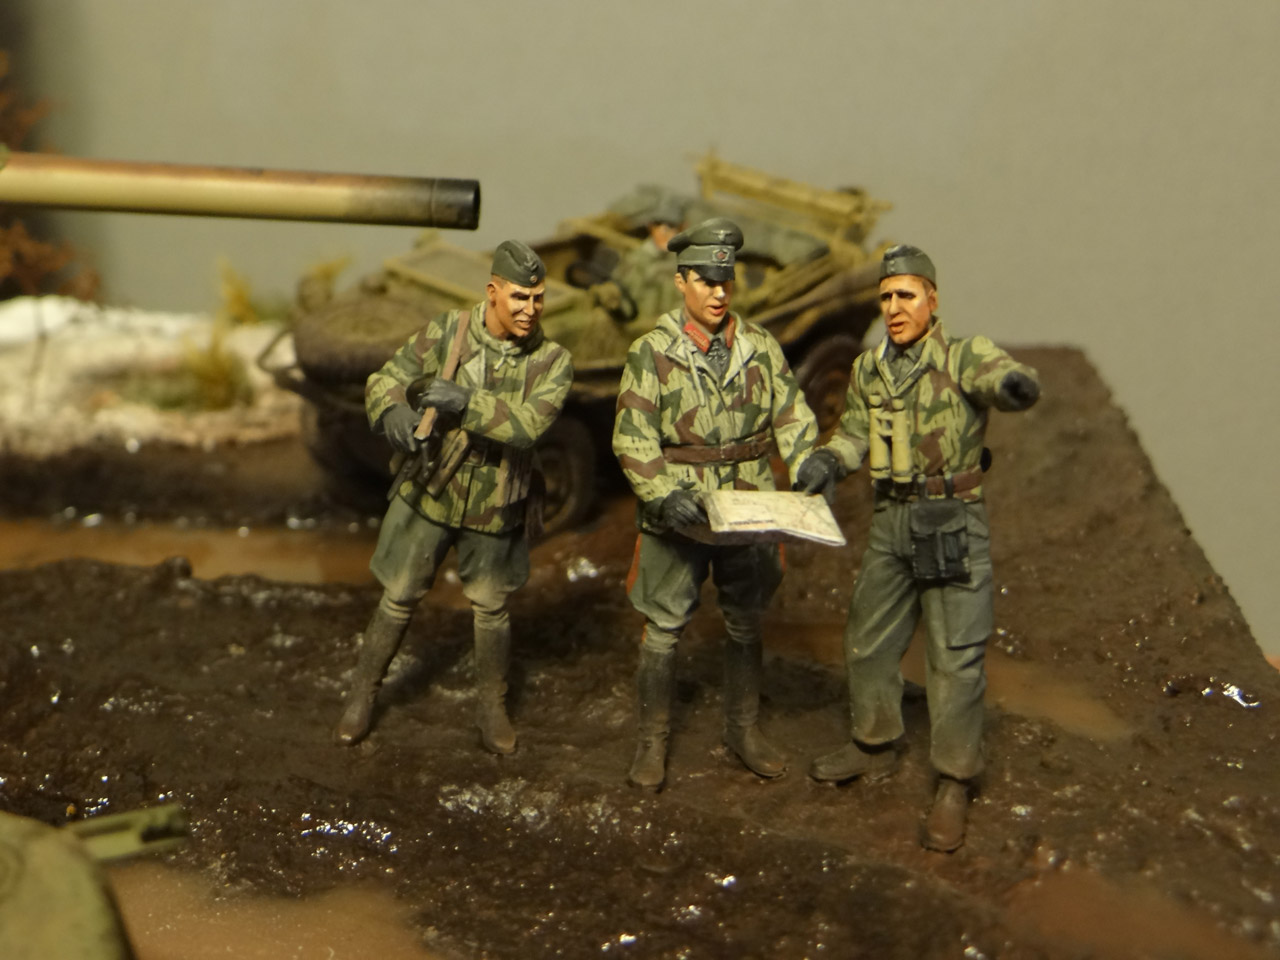 Dioramas and Vignettes: The Western Front, photo #16